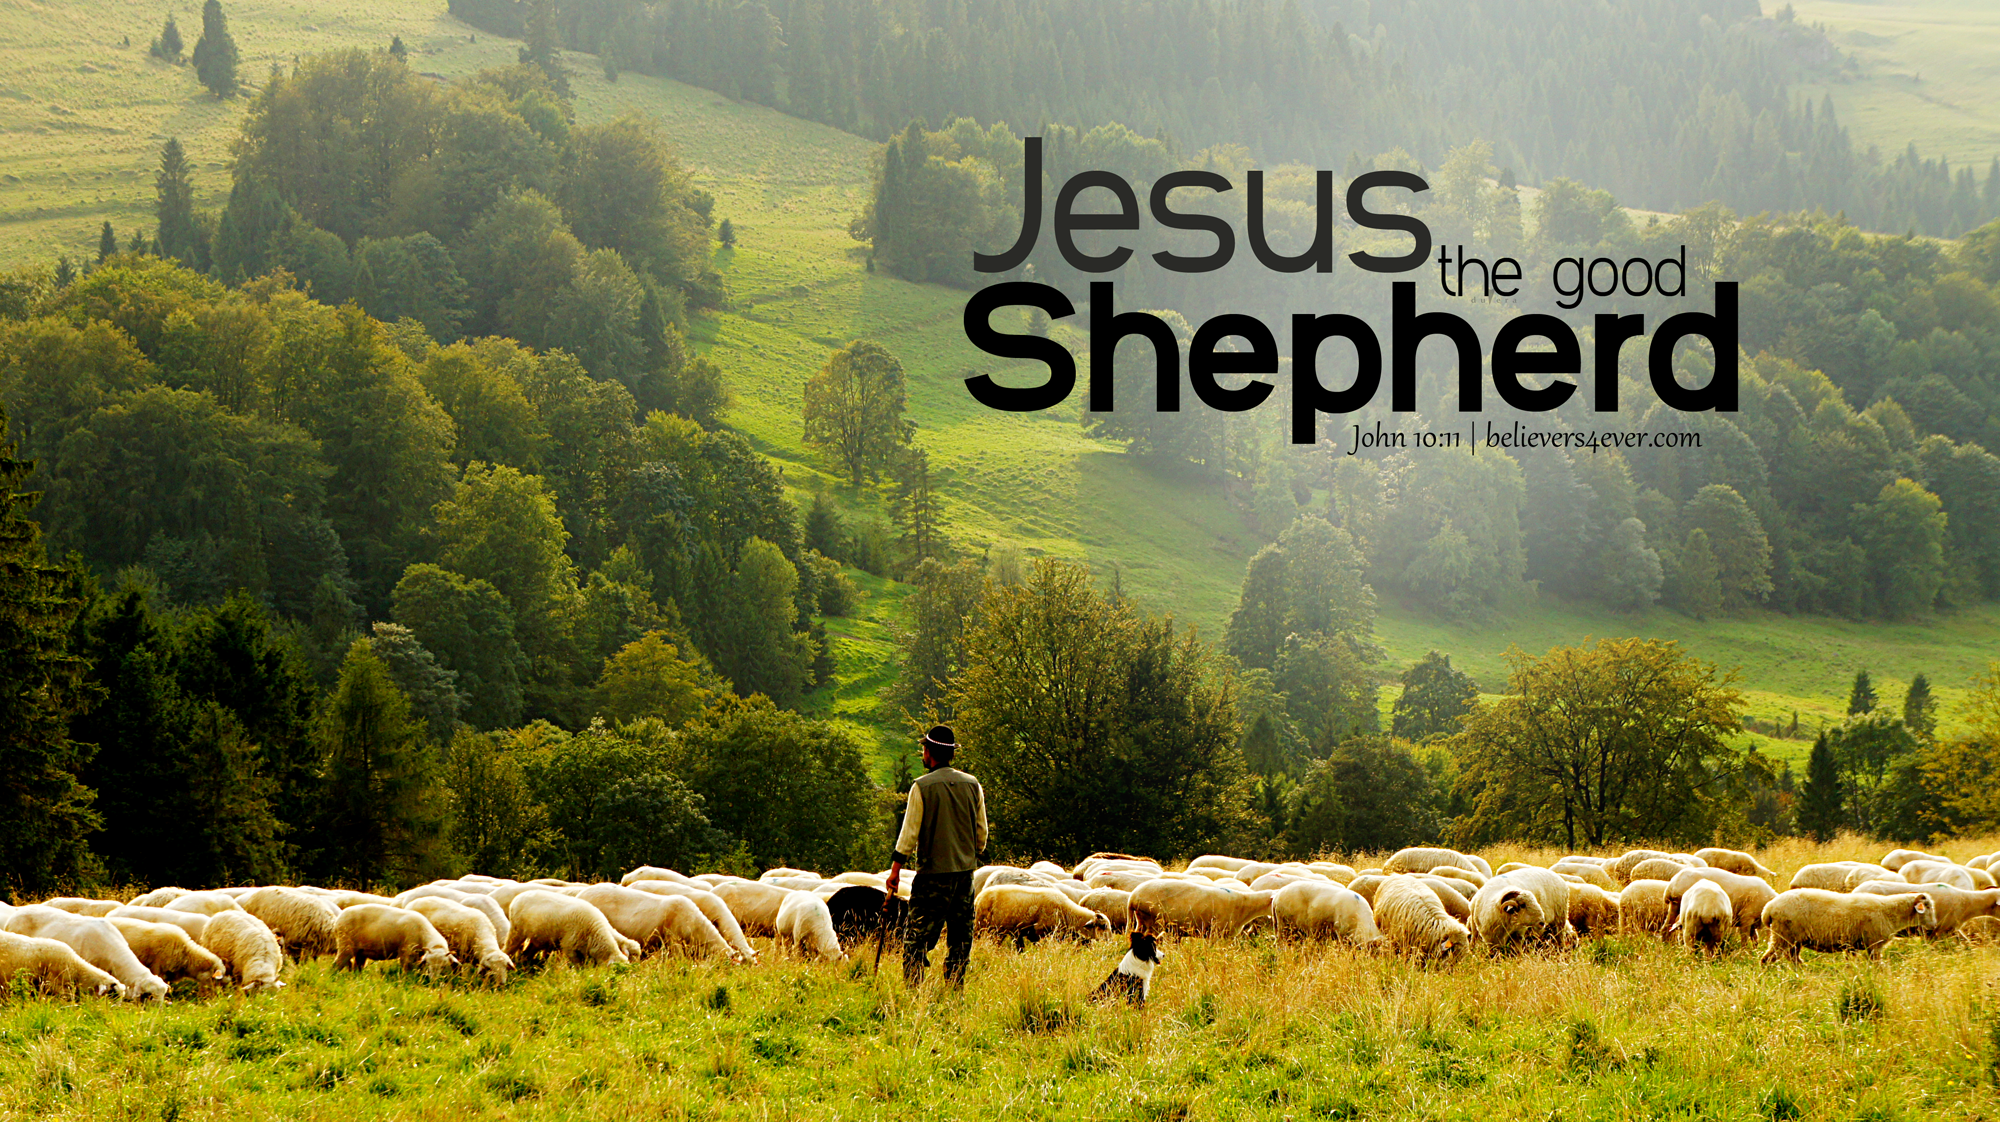 Jesus the good shepherd wallpaper, Christian stock images